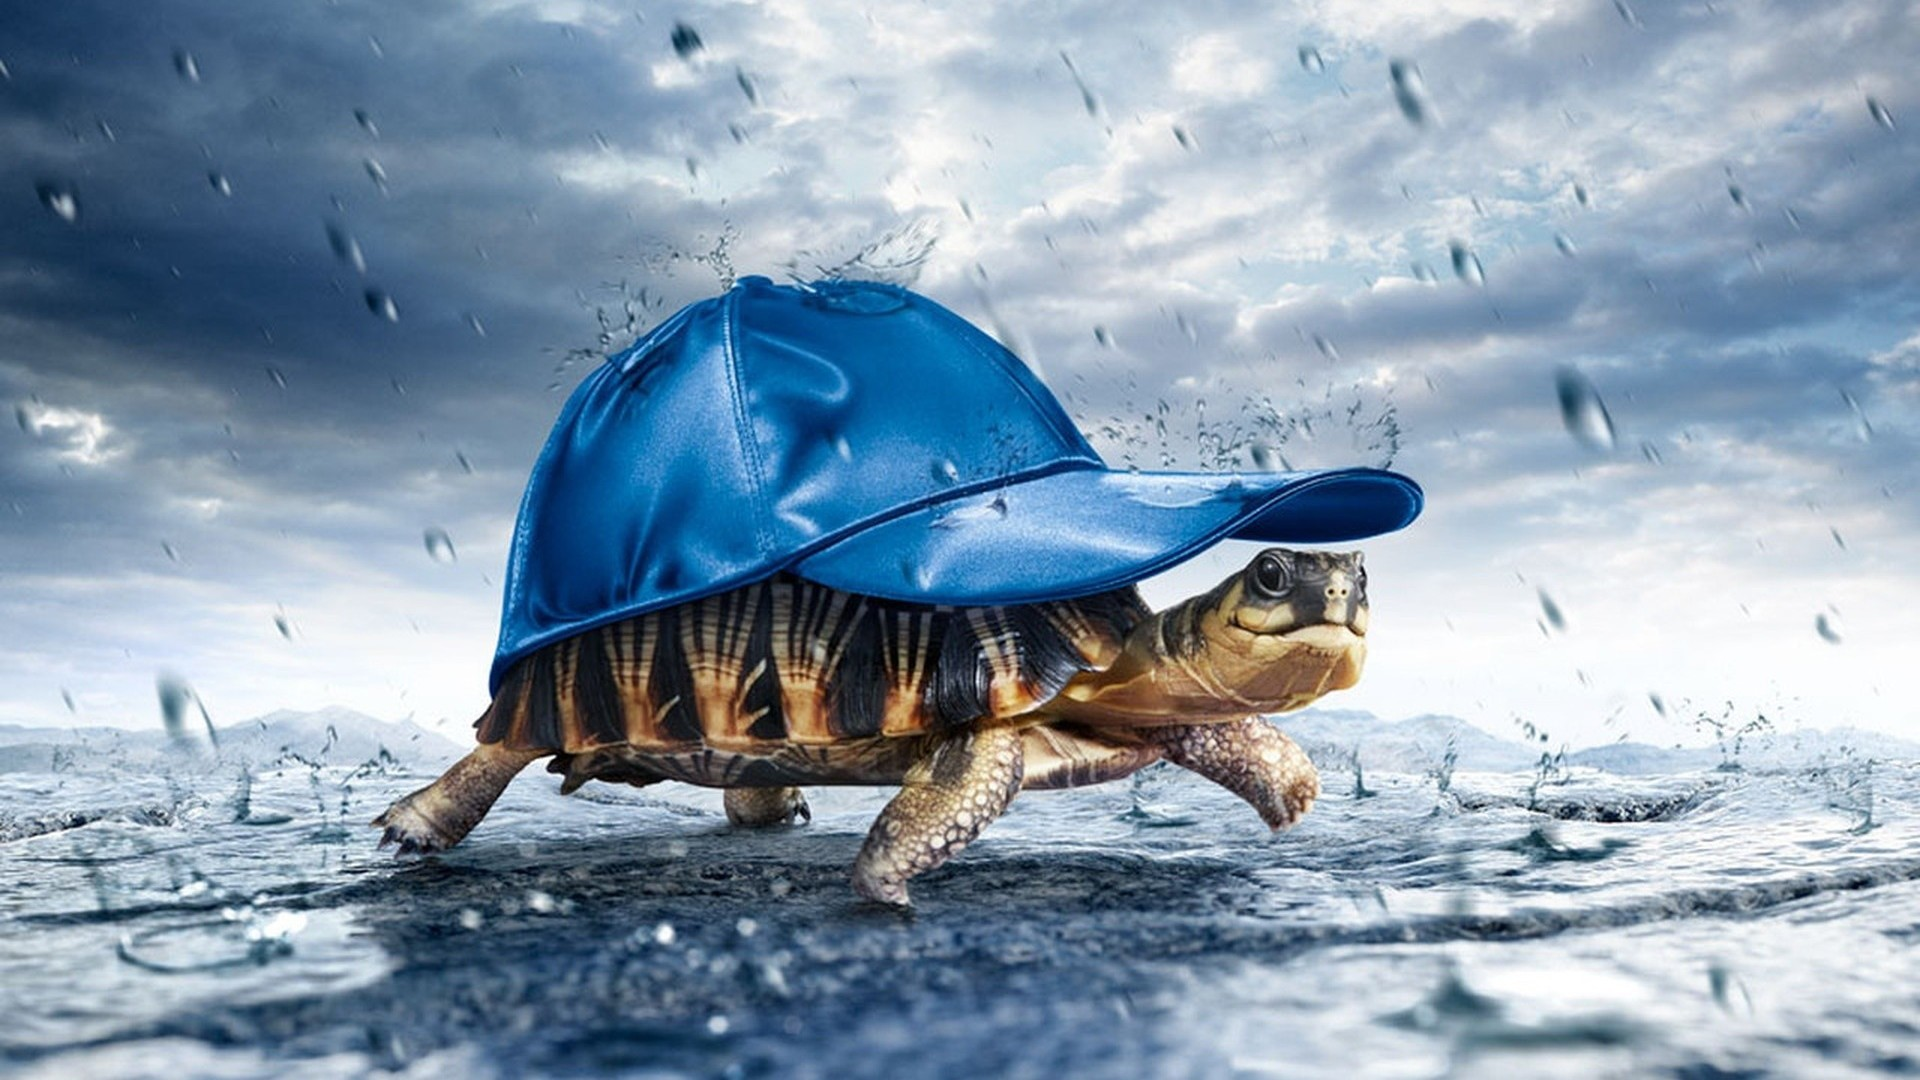 rain turtles HD Wallpaper